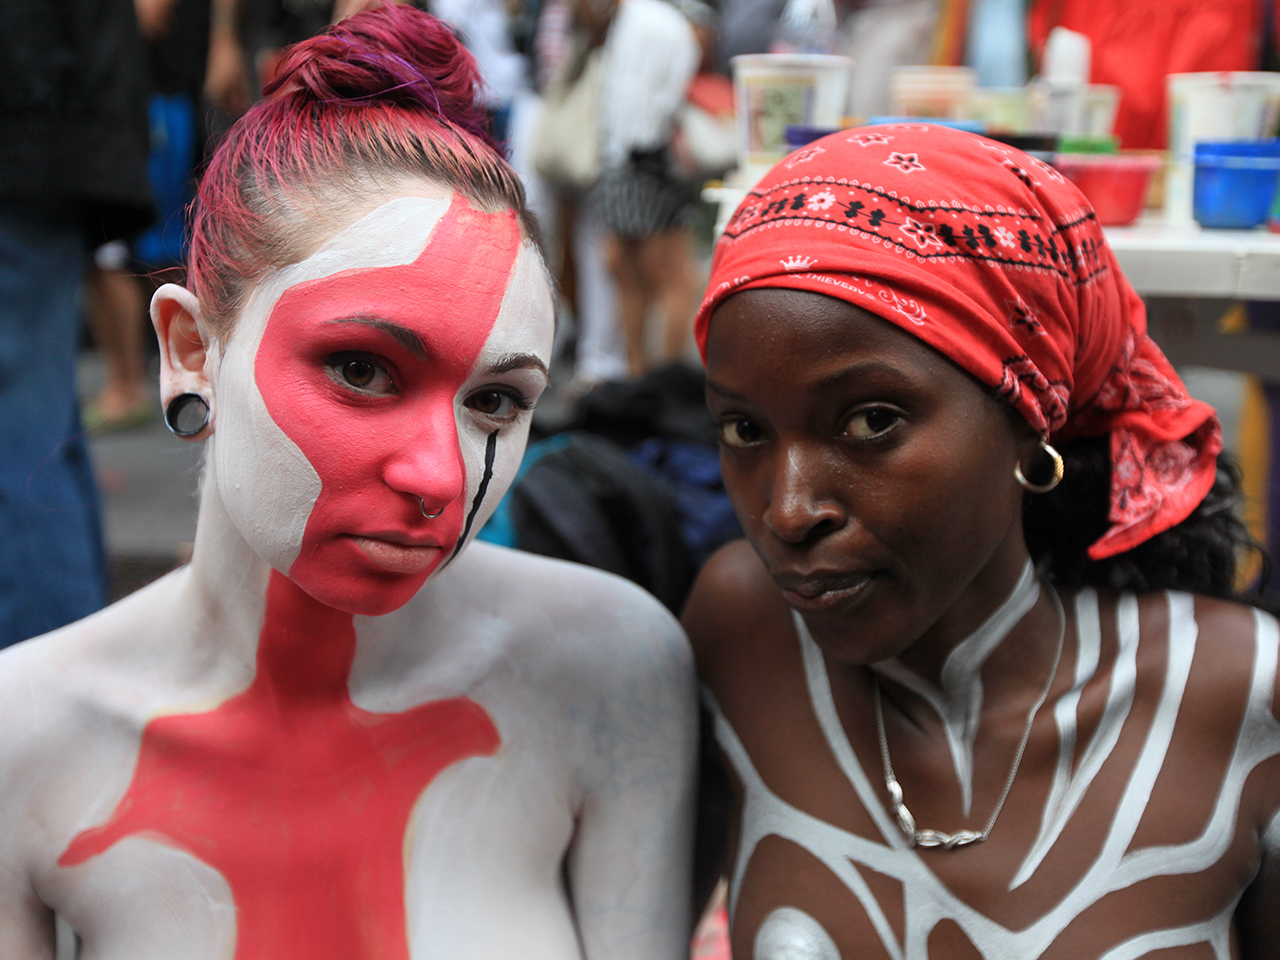 Nudists Dylan Hall, left, and Myscha participate in public body painting event by artist Andy Golub near New York's Times Square on July 31, 2013.